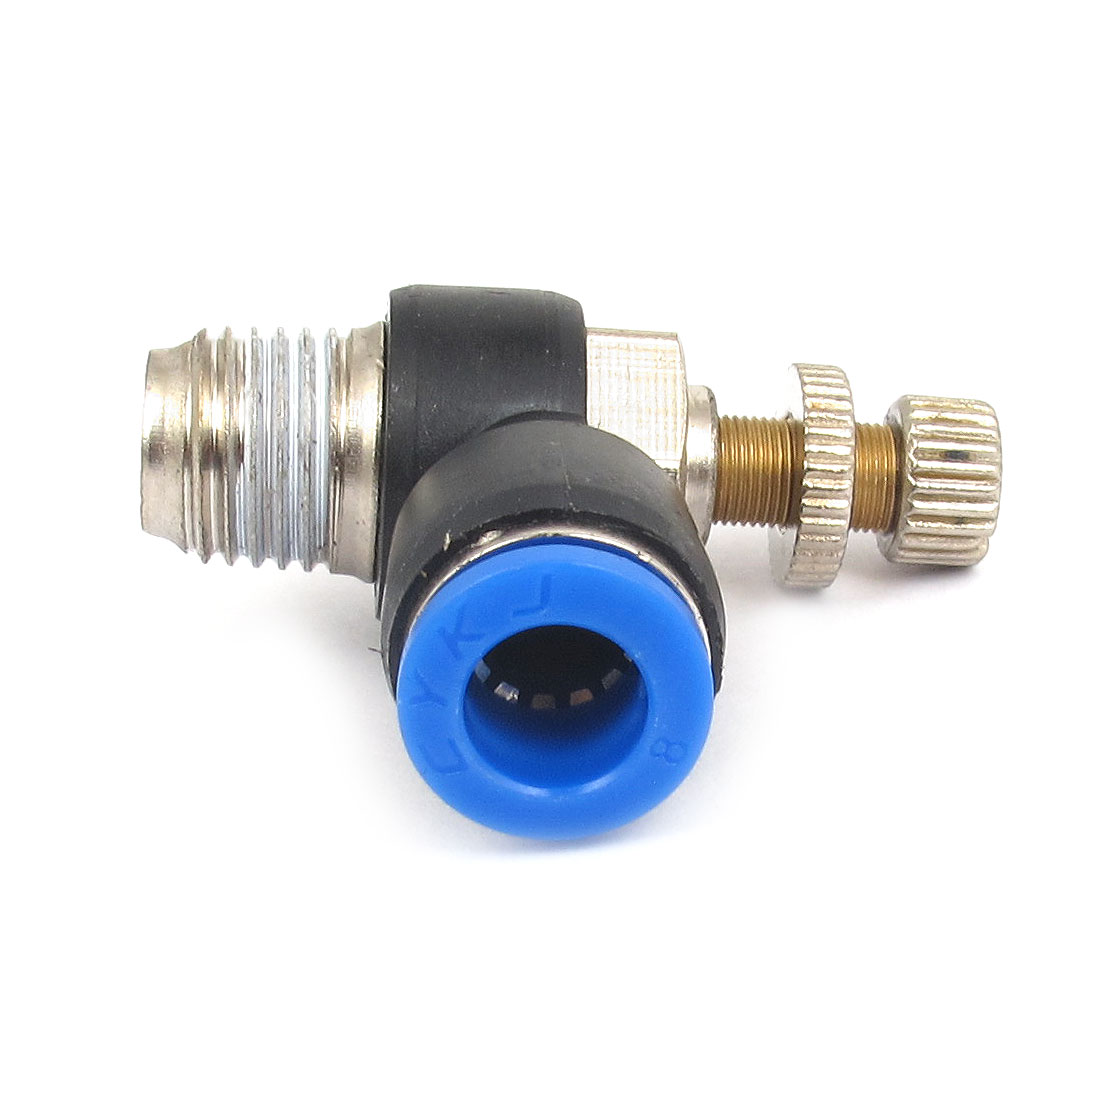 8mm x 1/4BSP Flow Speed Control Valve Connector Elbow Pneumatic Push in Fitting